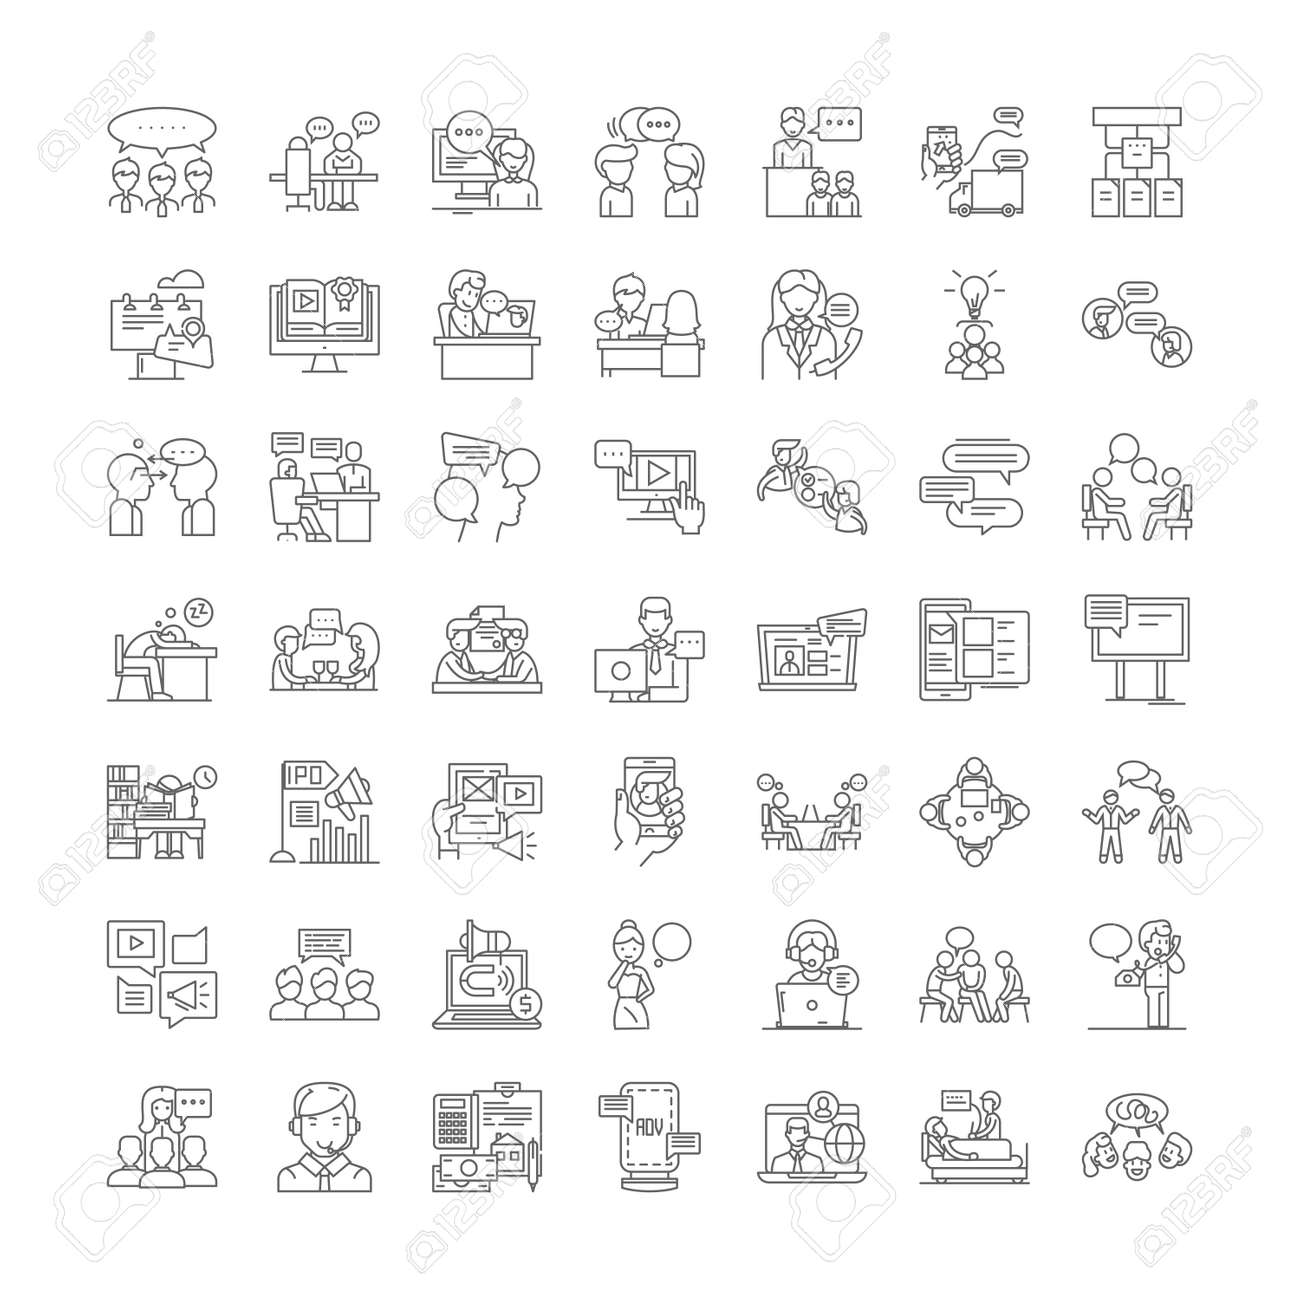 Lecture line icons, signs, symbols vector, linear illustration set - 134820707